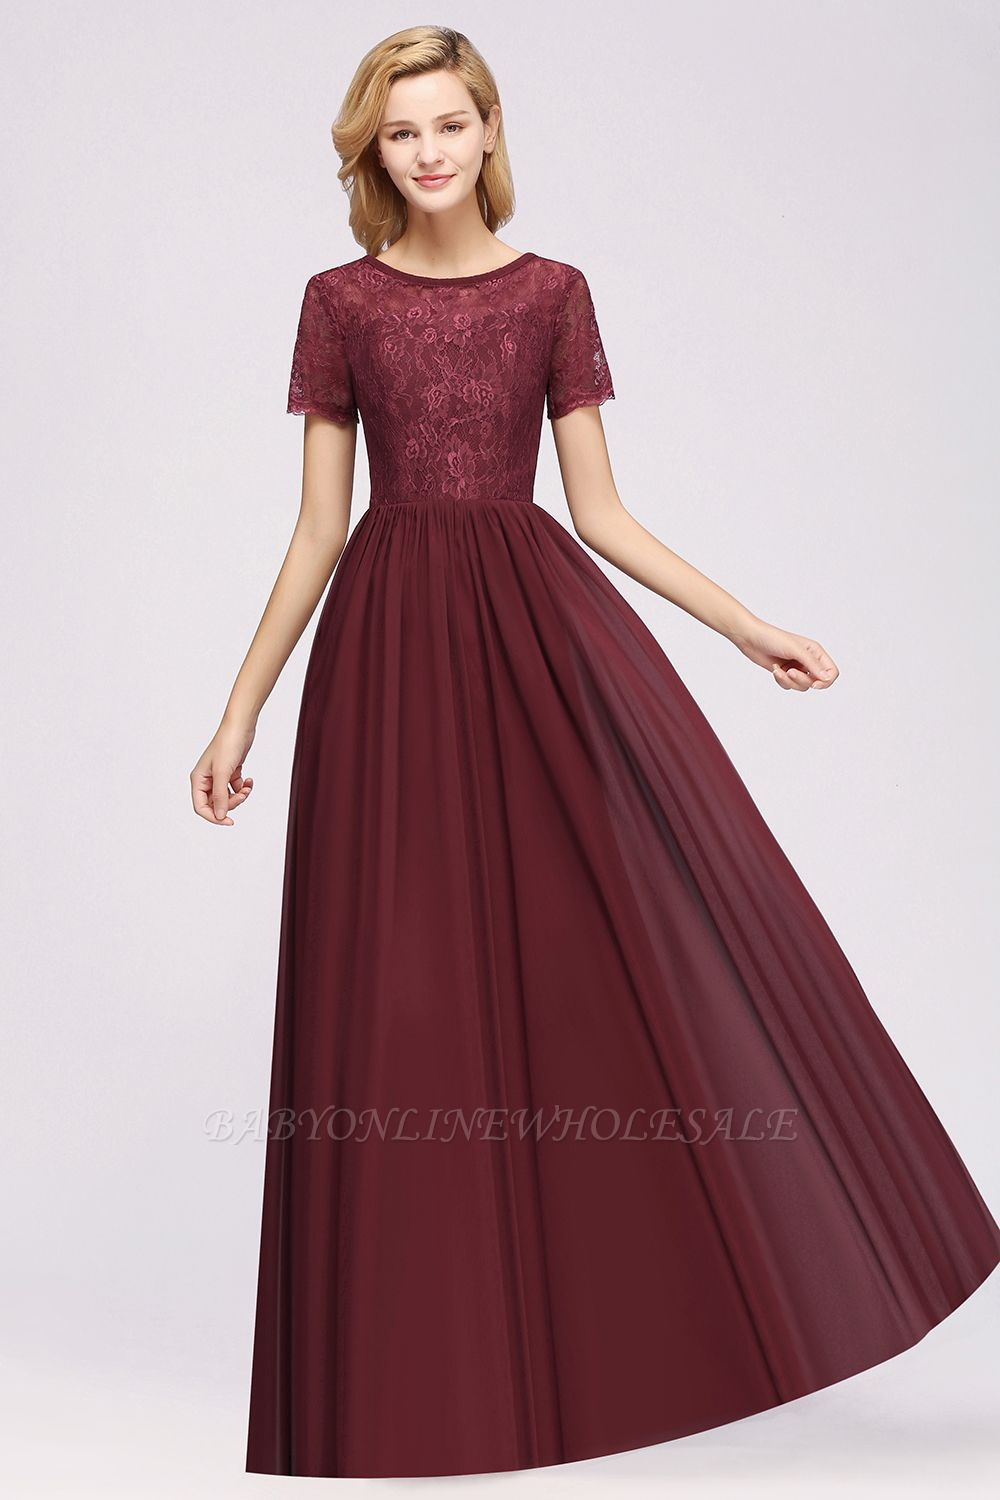 A-line Chiffon Lace Jewel Short-Sleeves Floor-length Bridesmaid Dress